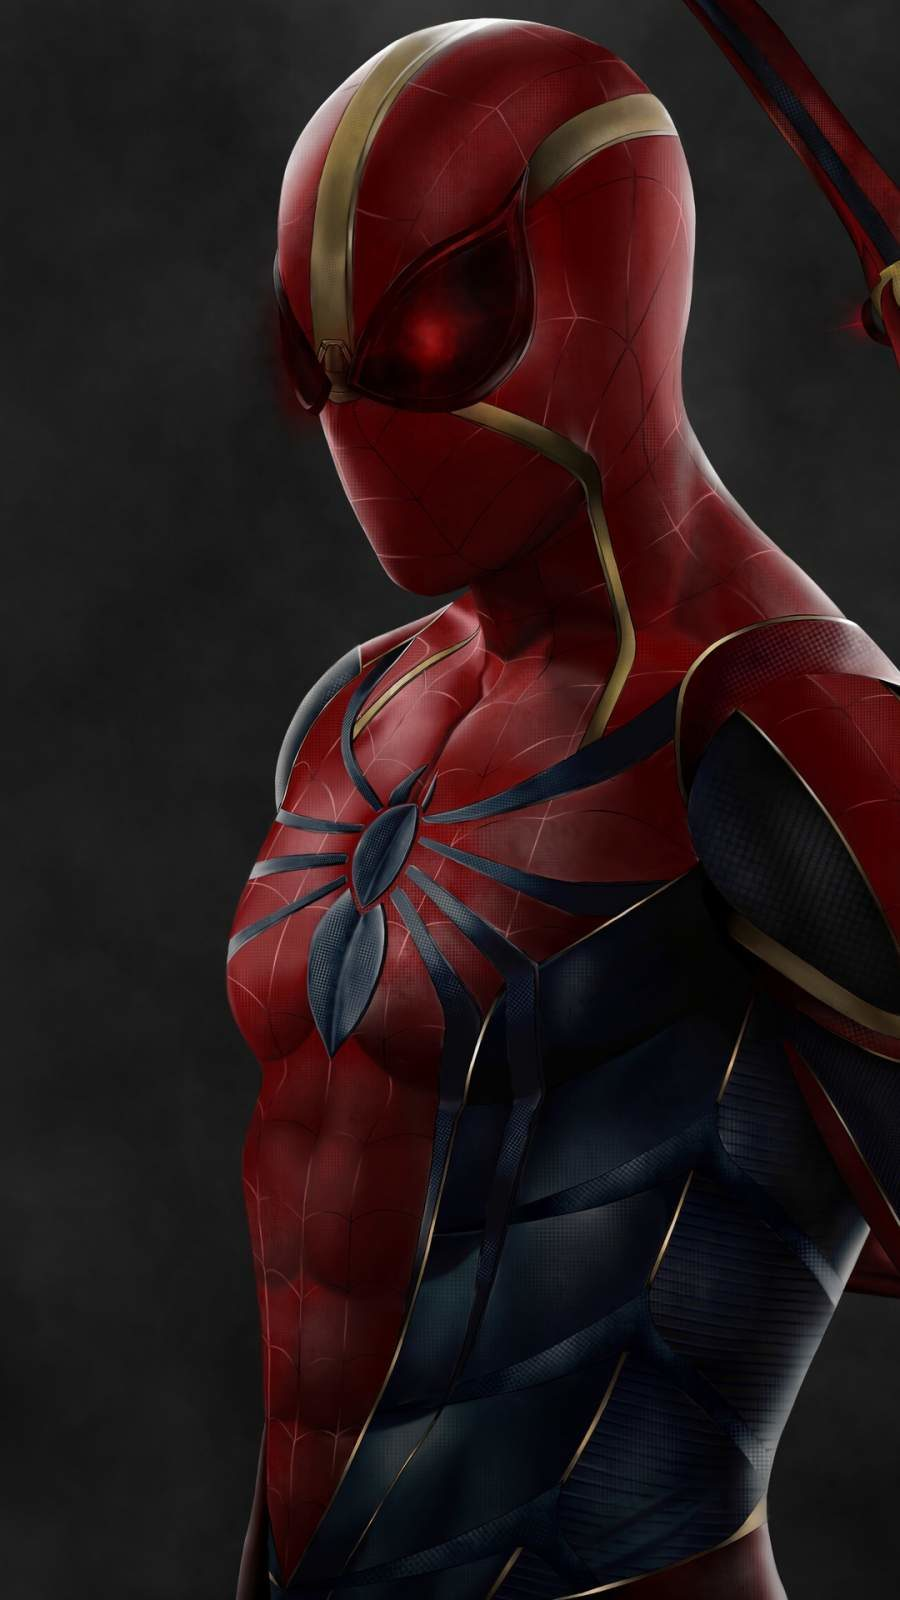 Free spiderman background for high resolution mobile screen